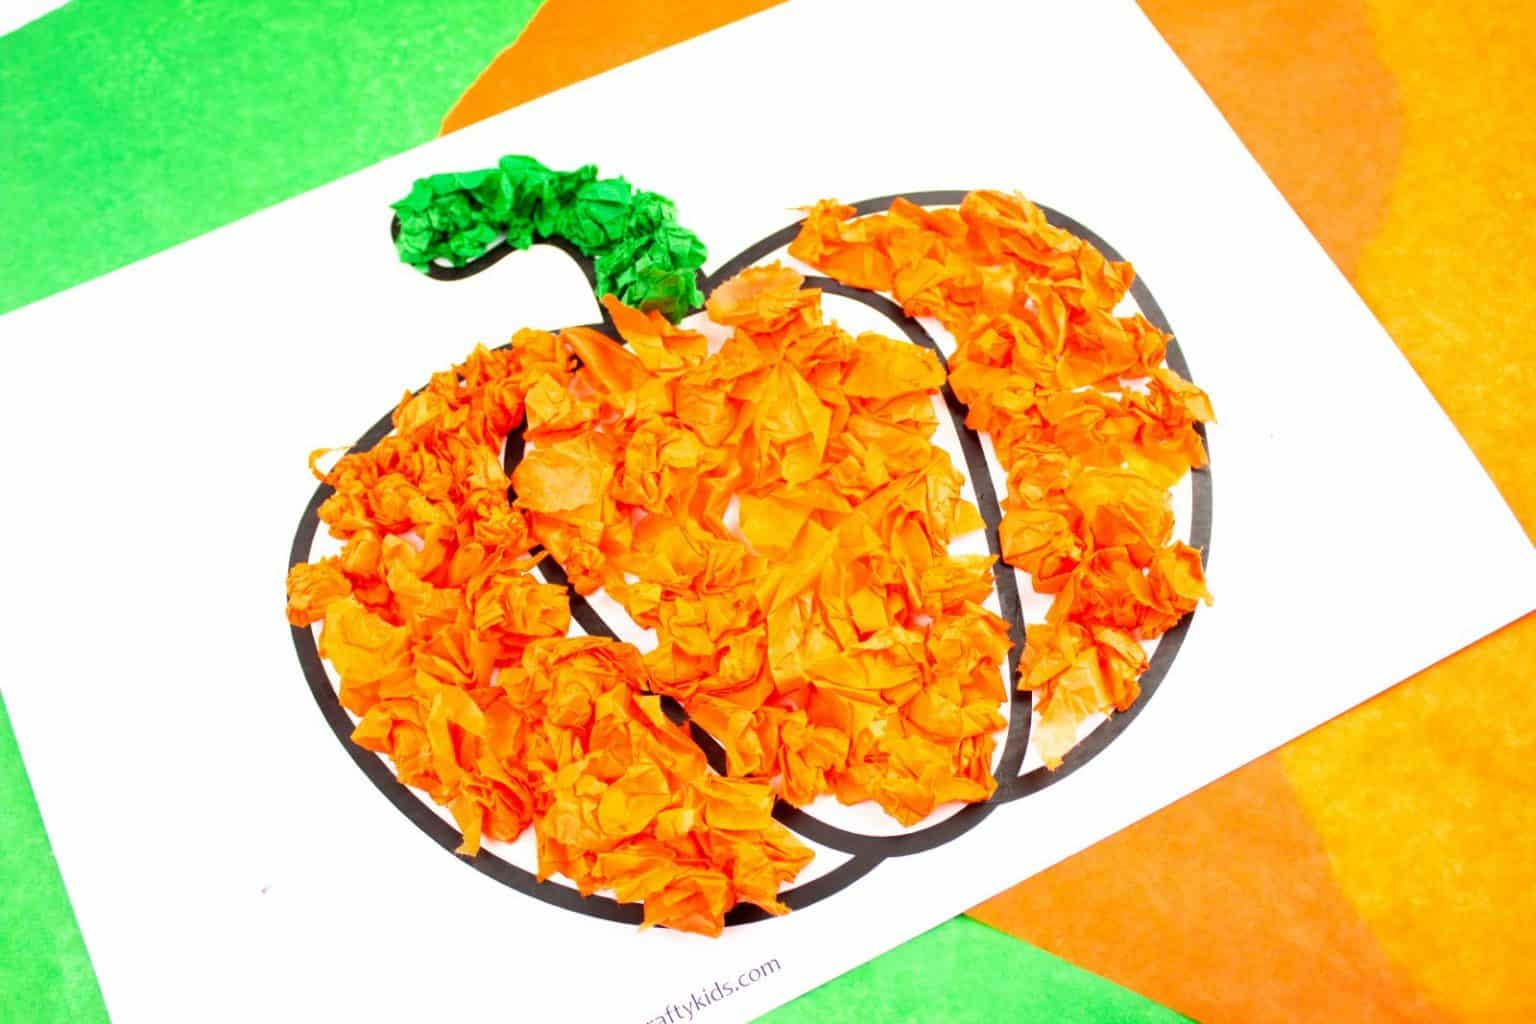 Arty Crafty Kids - Tissue Paper Pumpkin Craft for kids. A sweet Autumn or Halloween craft that's great for developing fine motor skills! #pumpkin #preschool #preschoolcraft #easykidscraft #craftsforkids #finemotor